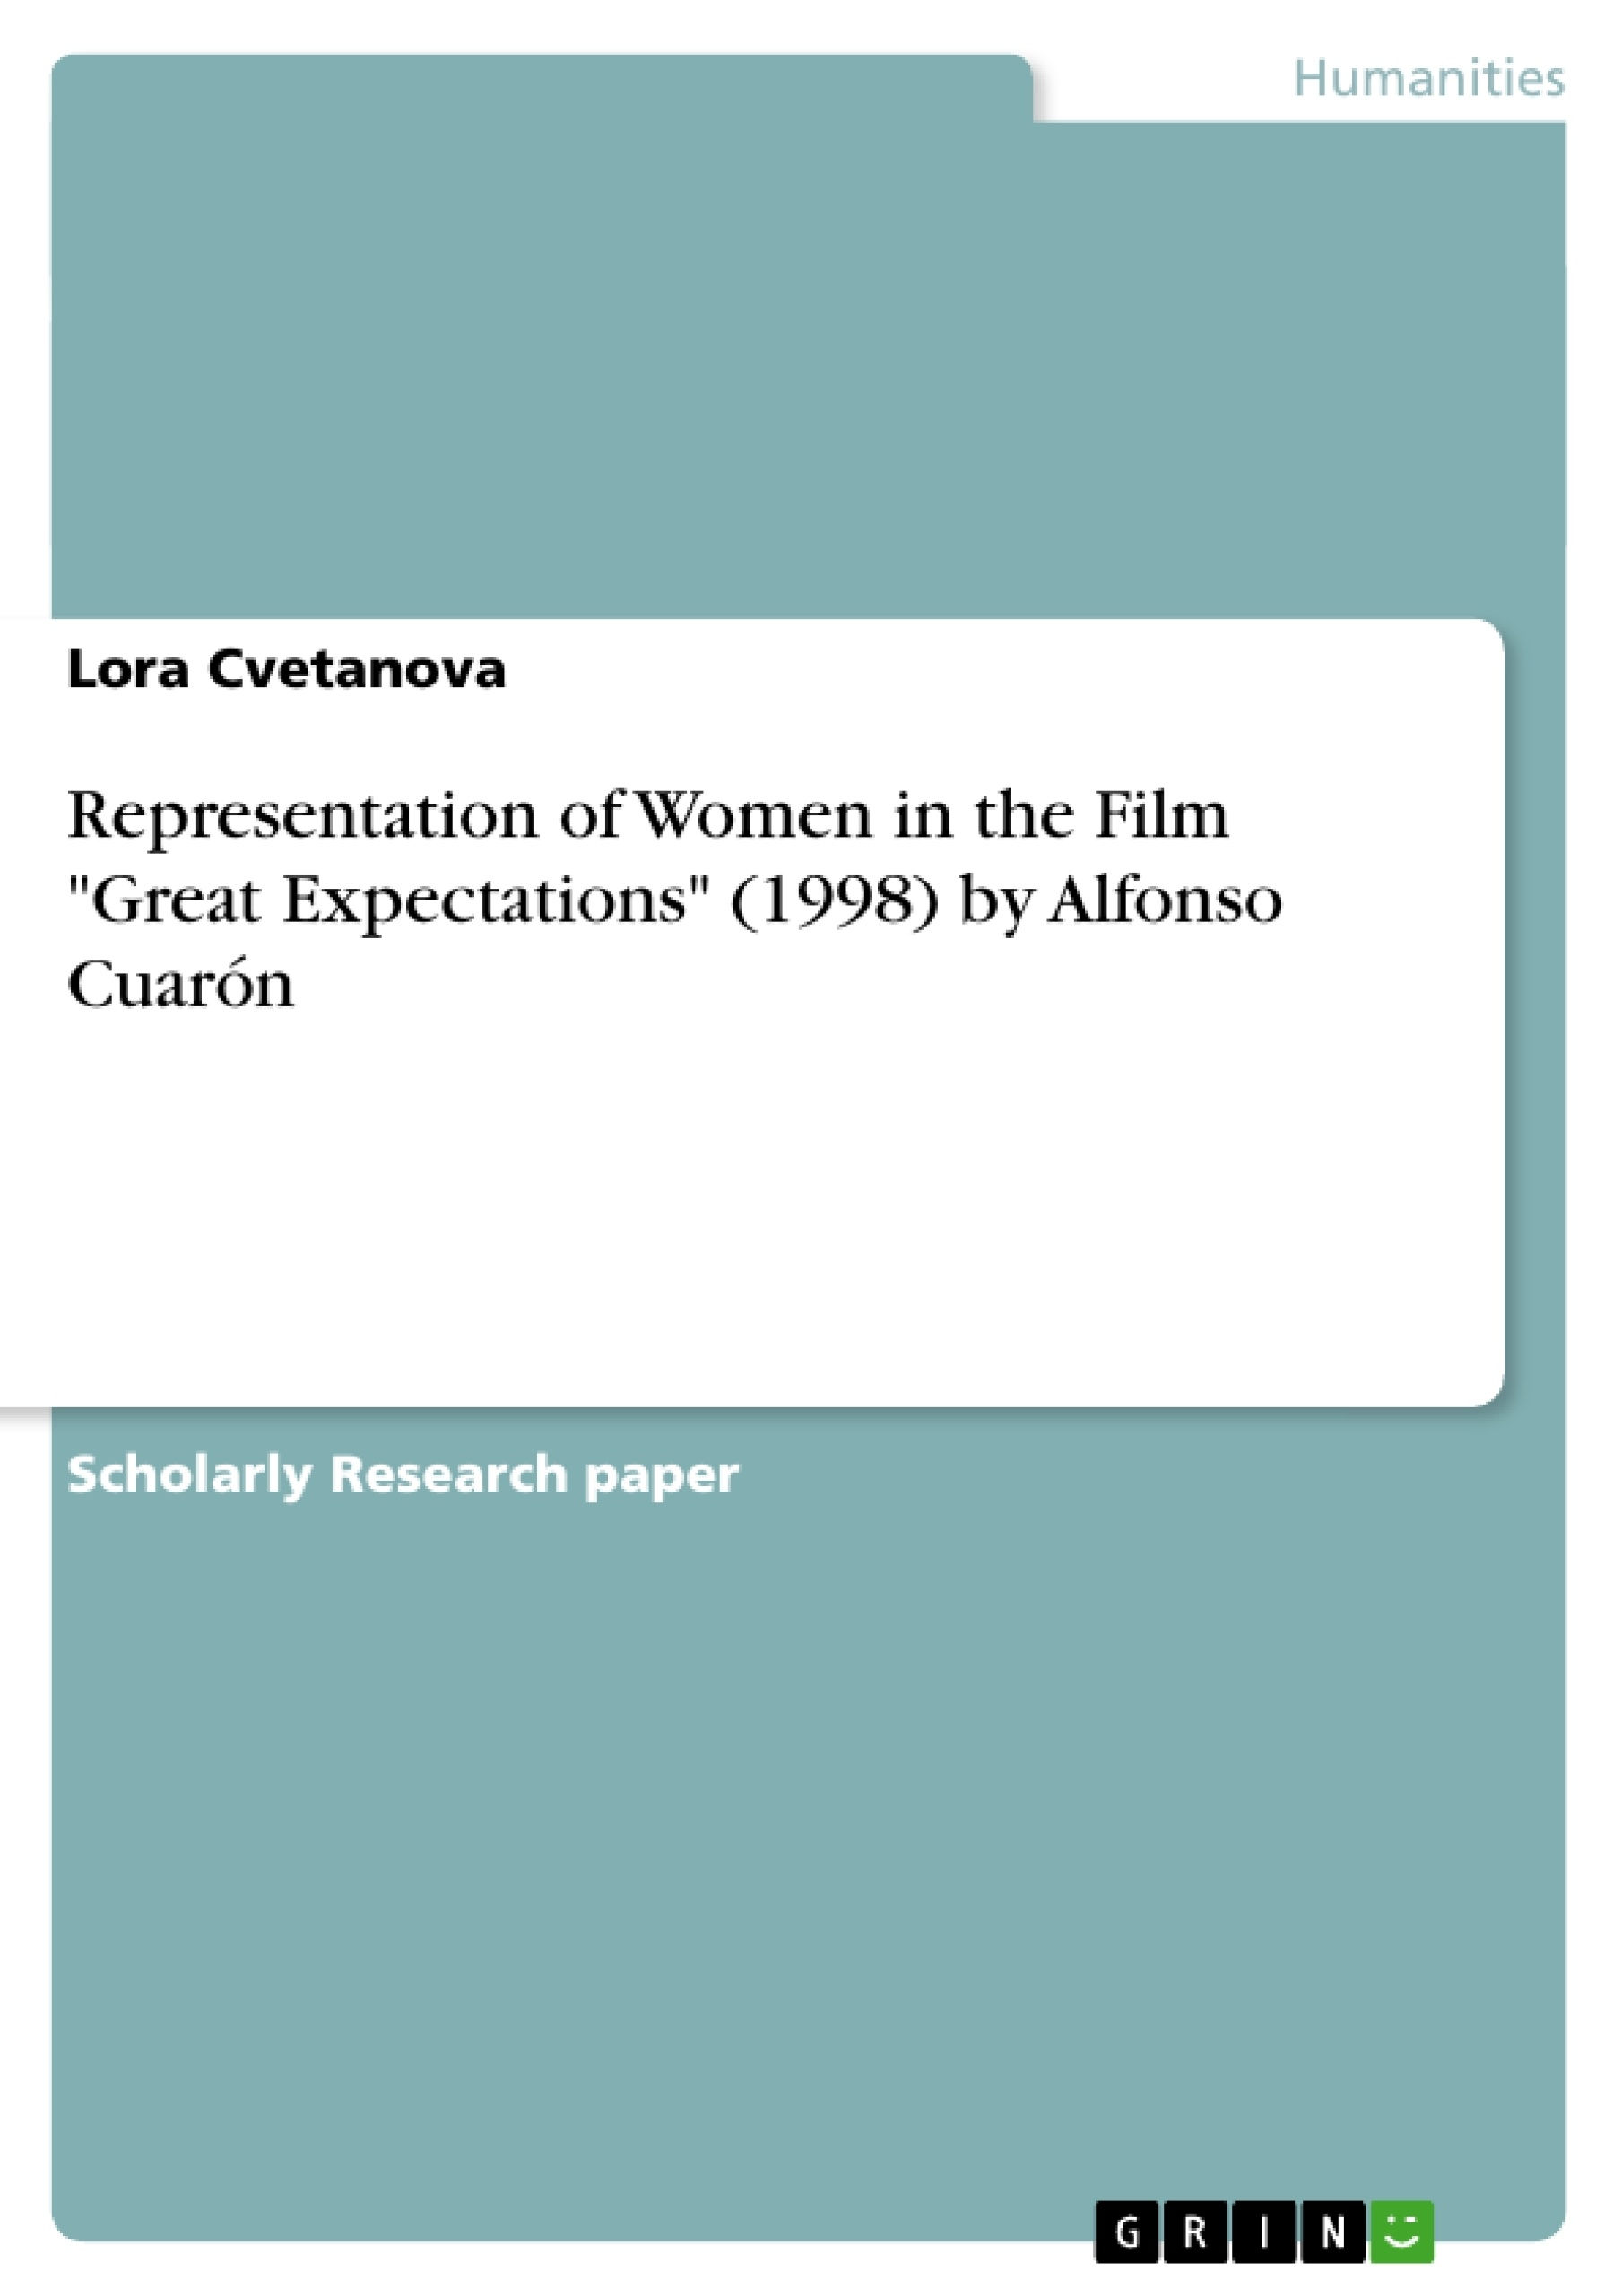 """Title: Representation of Women in the Film """"Great Expectations"""" (1998)  by Alfonso Cuarón"""